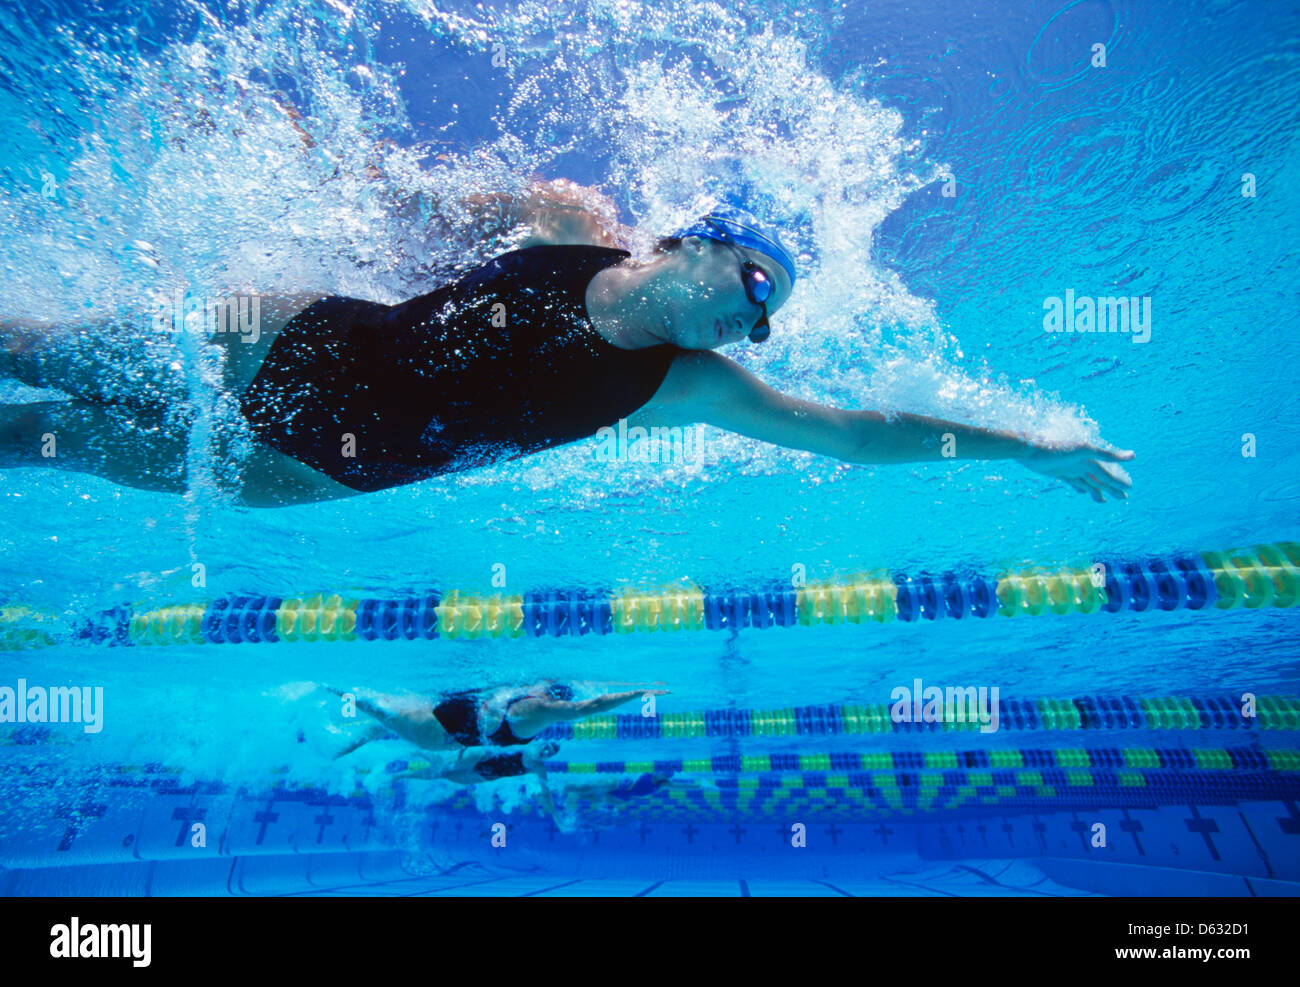 Professional female swimmers swimming in pool - Stock Image